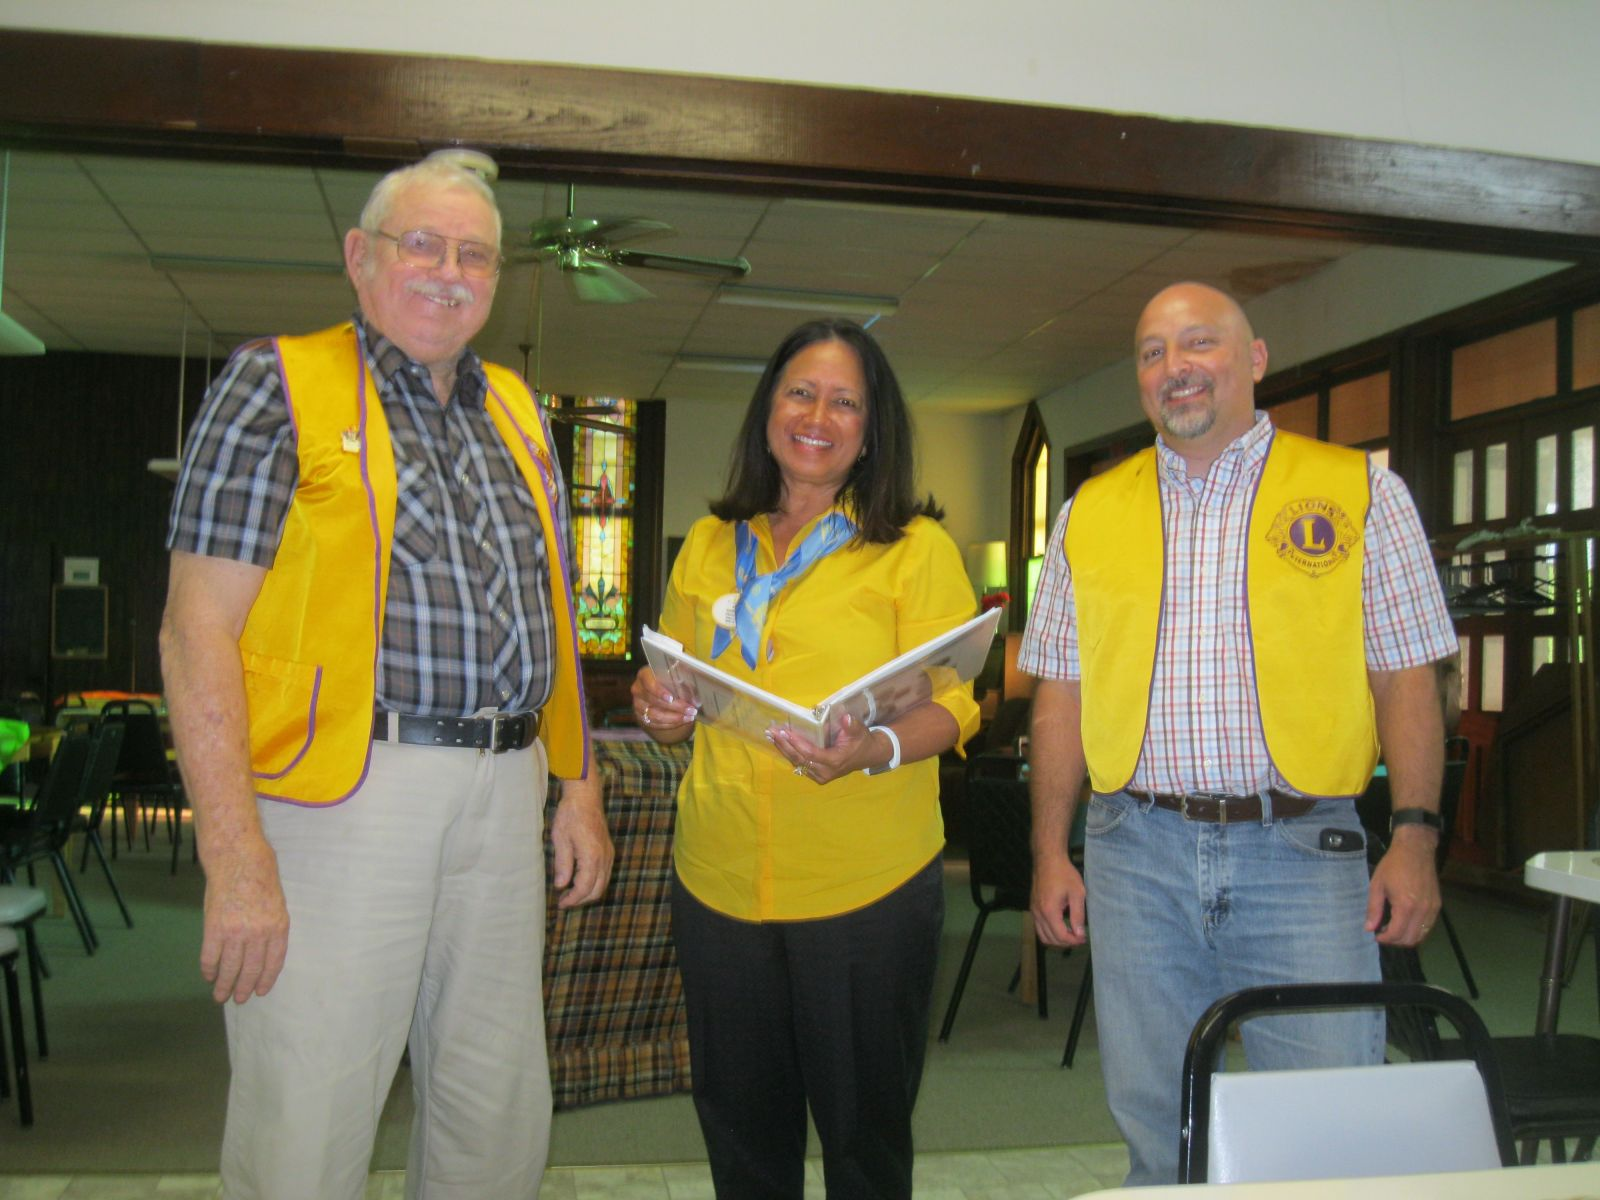 Lion Deb with at the Highland Lions Club Installation of Officers